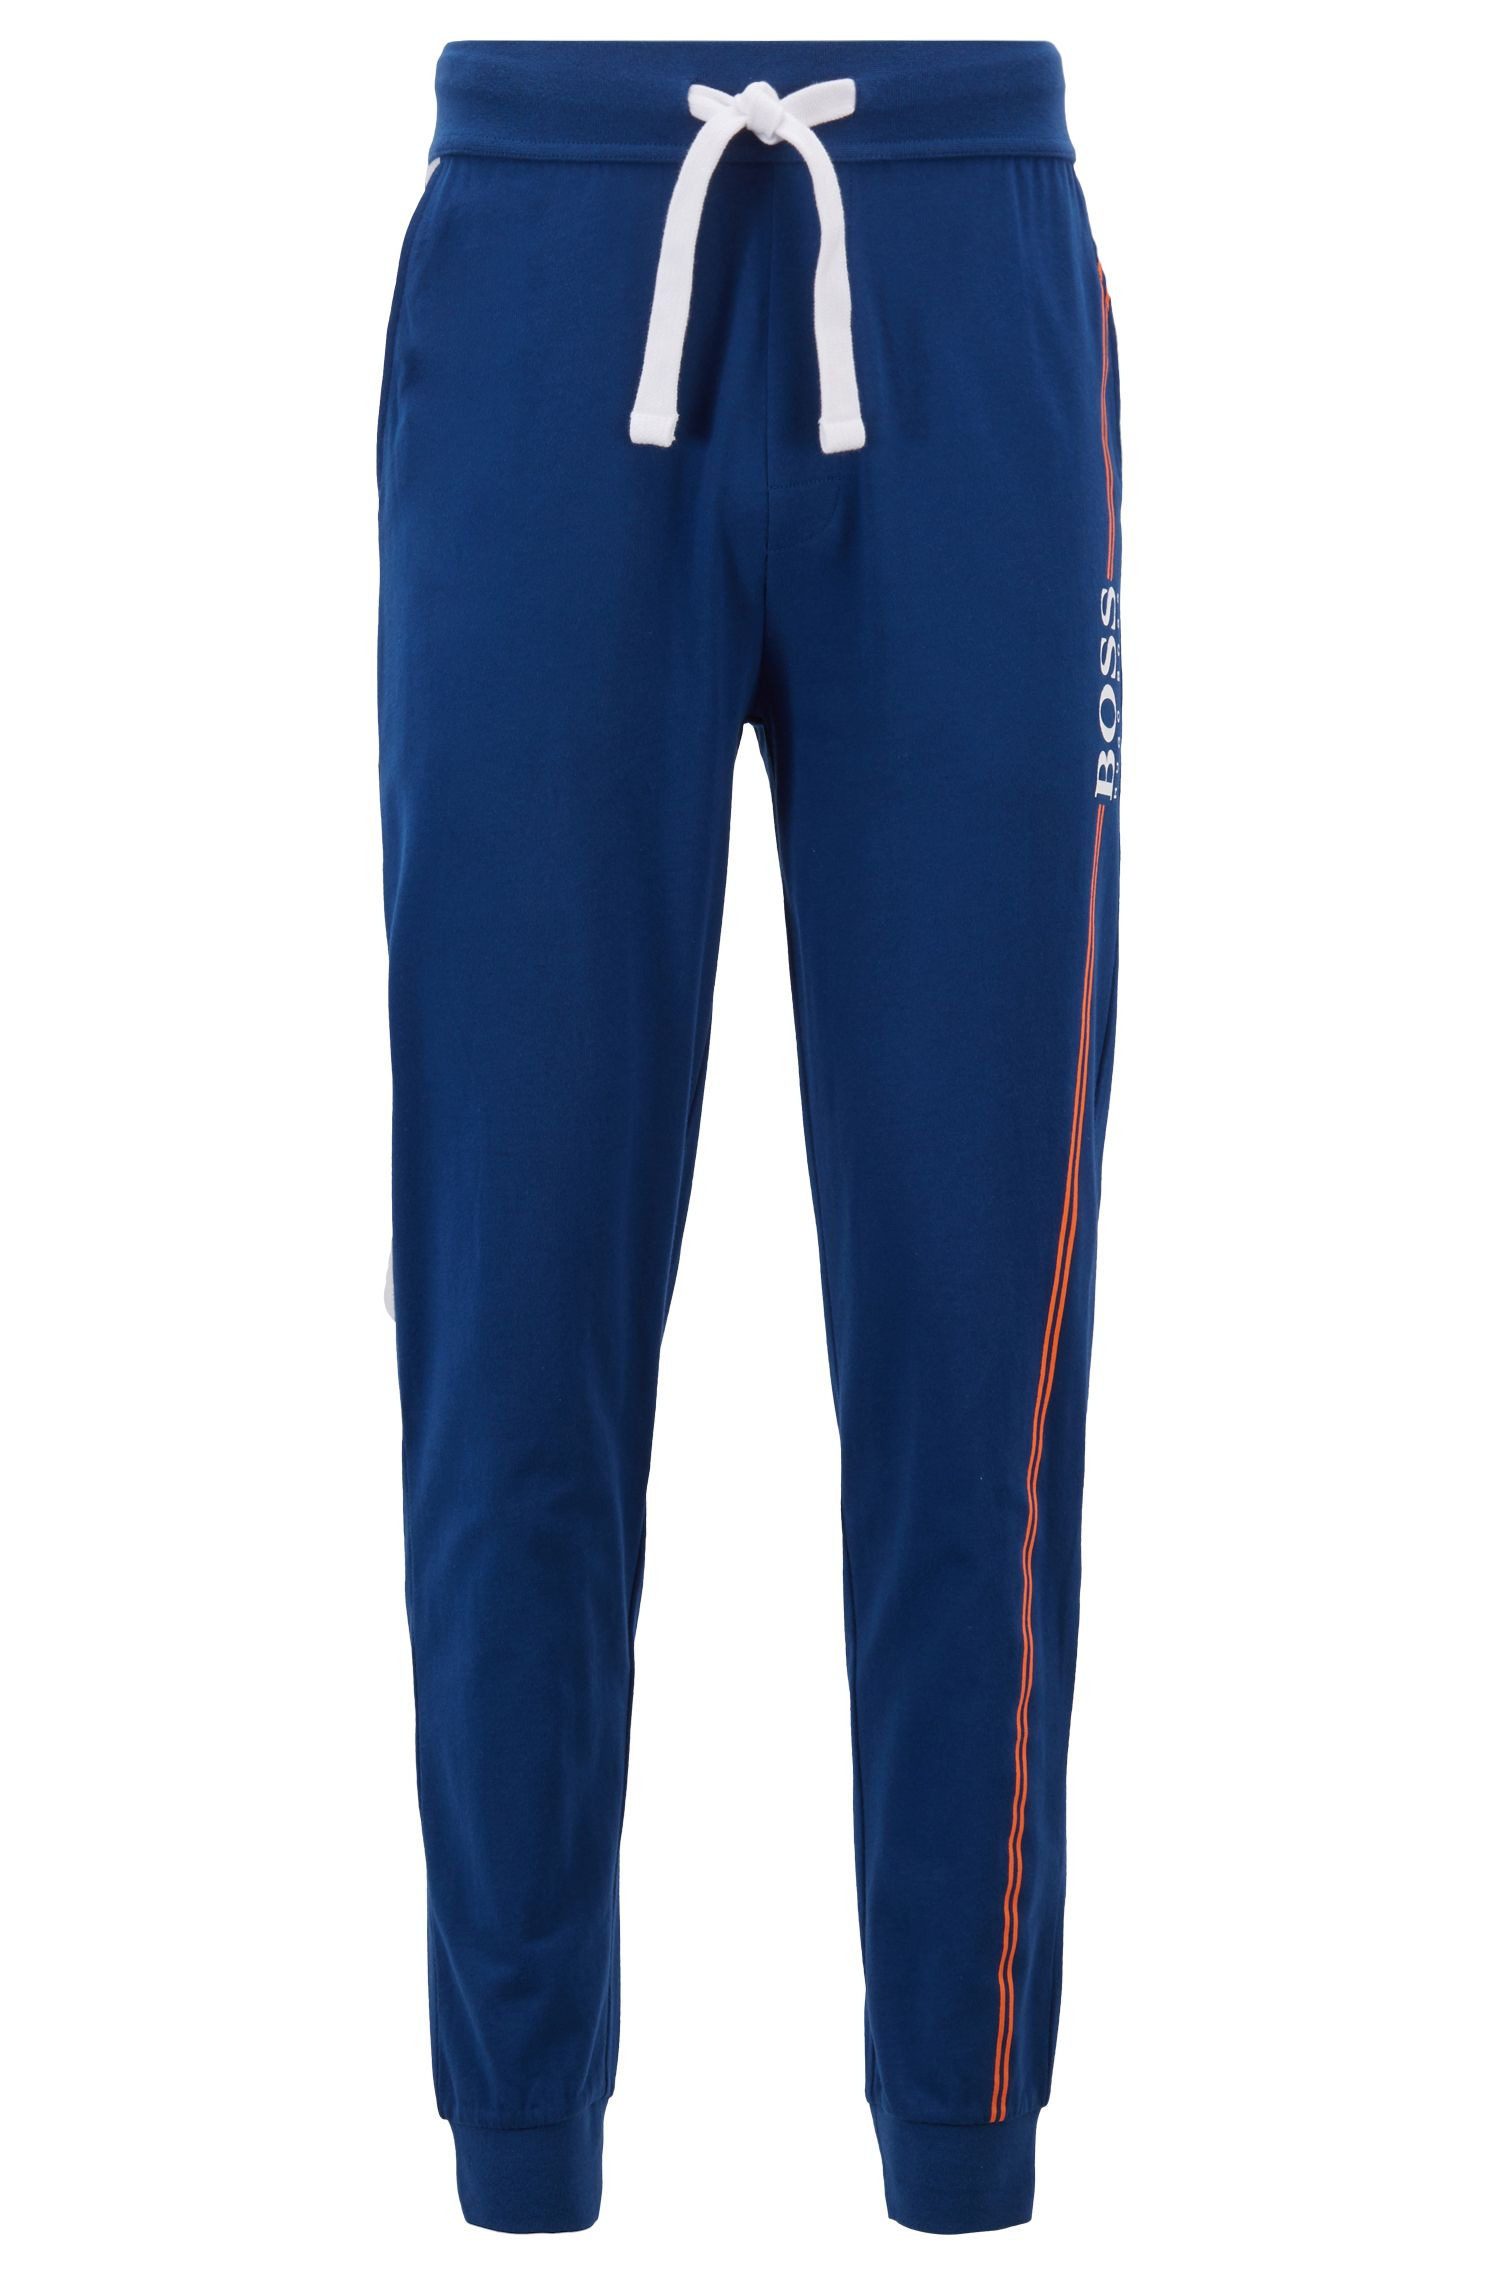 Cuffed-hem loungewear trousers in cotton with logo print, Blue